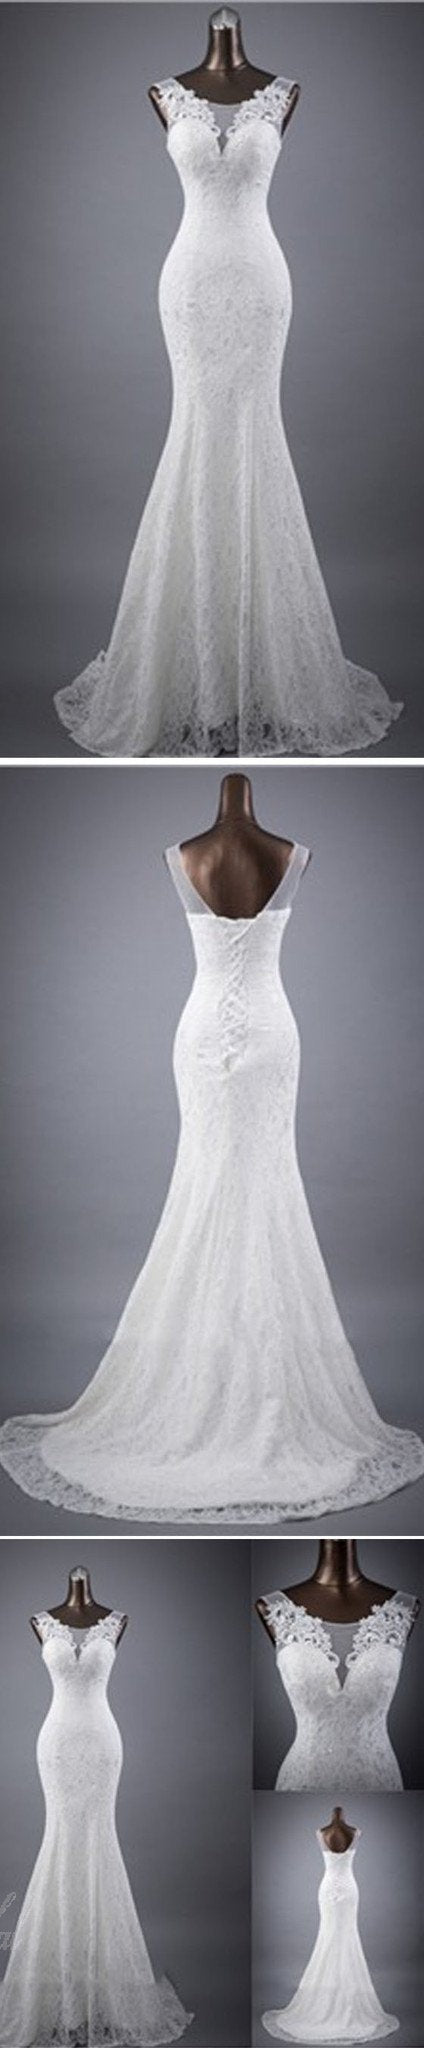 Elegant Sleeveless Mermaid Lace Up Popular White Lace Wedding Dresses, BG0175